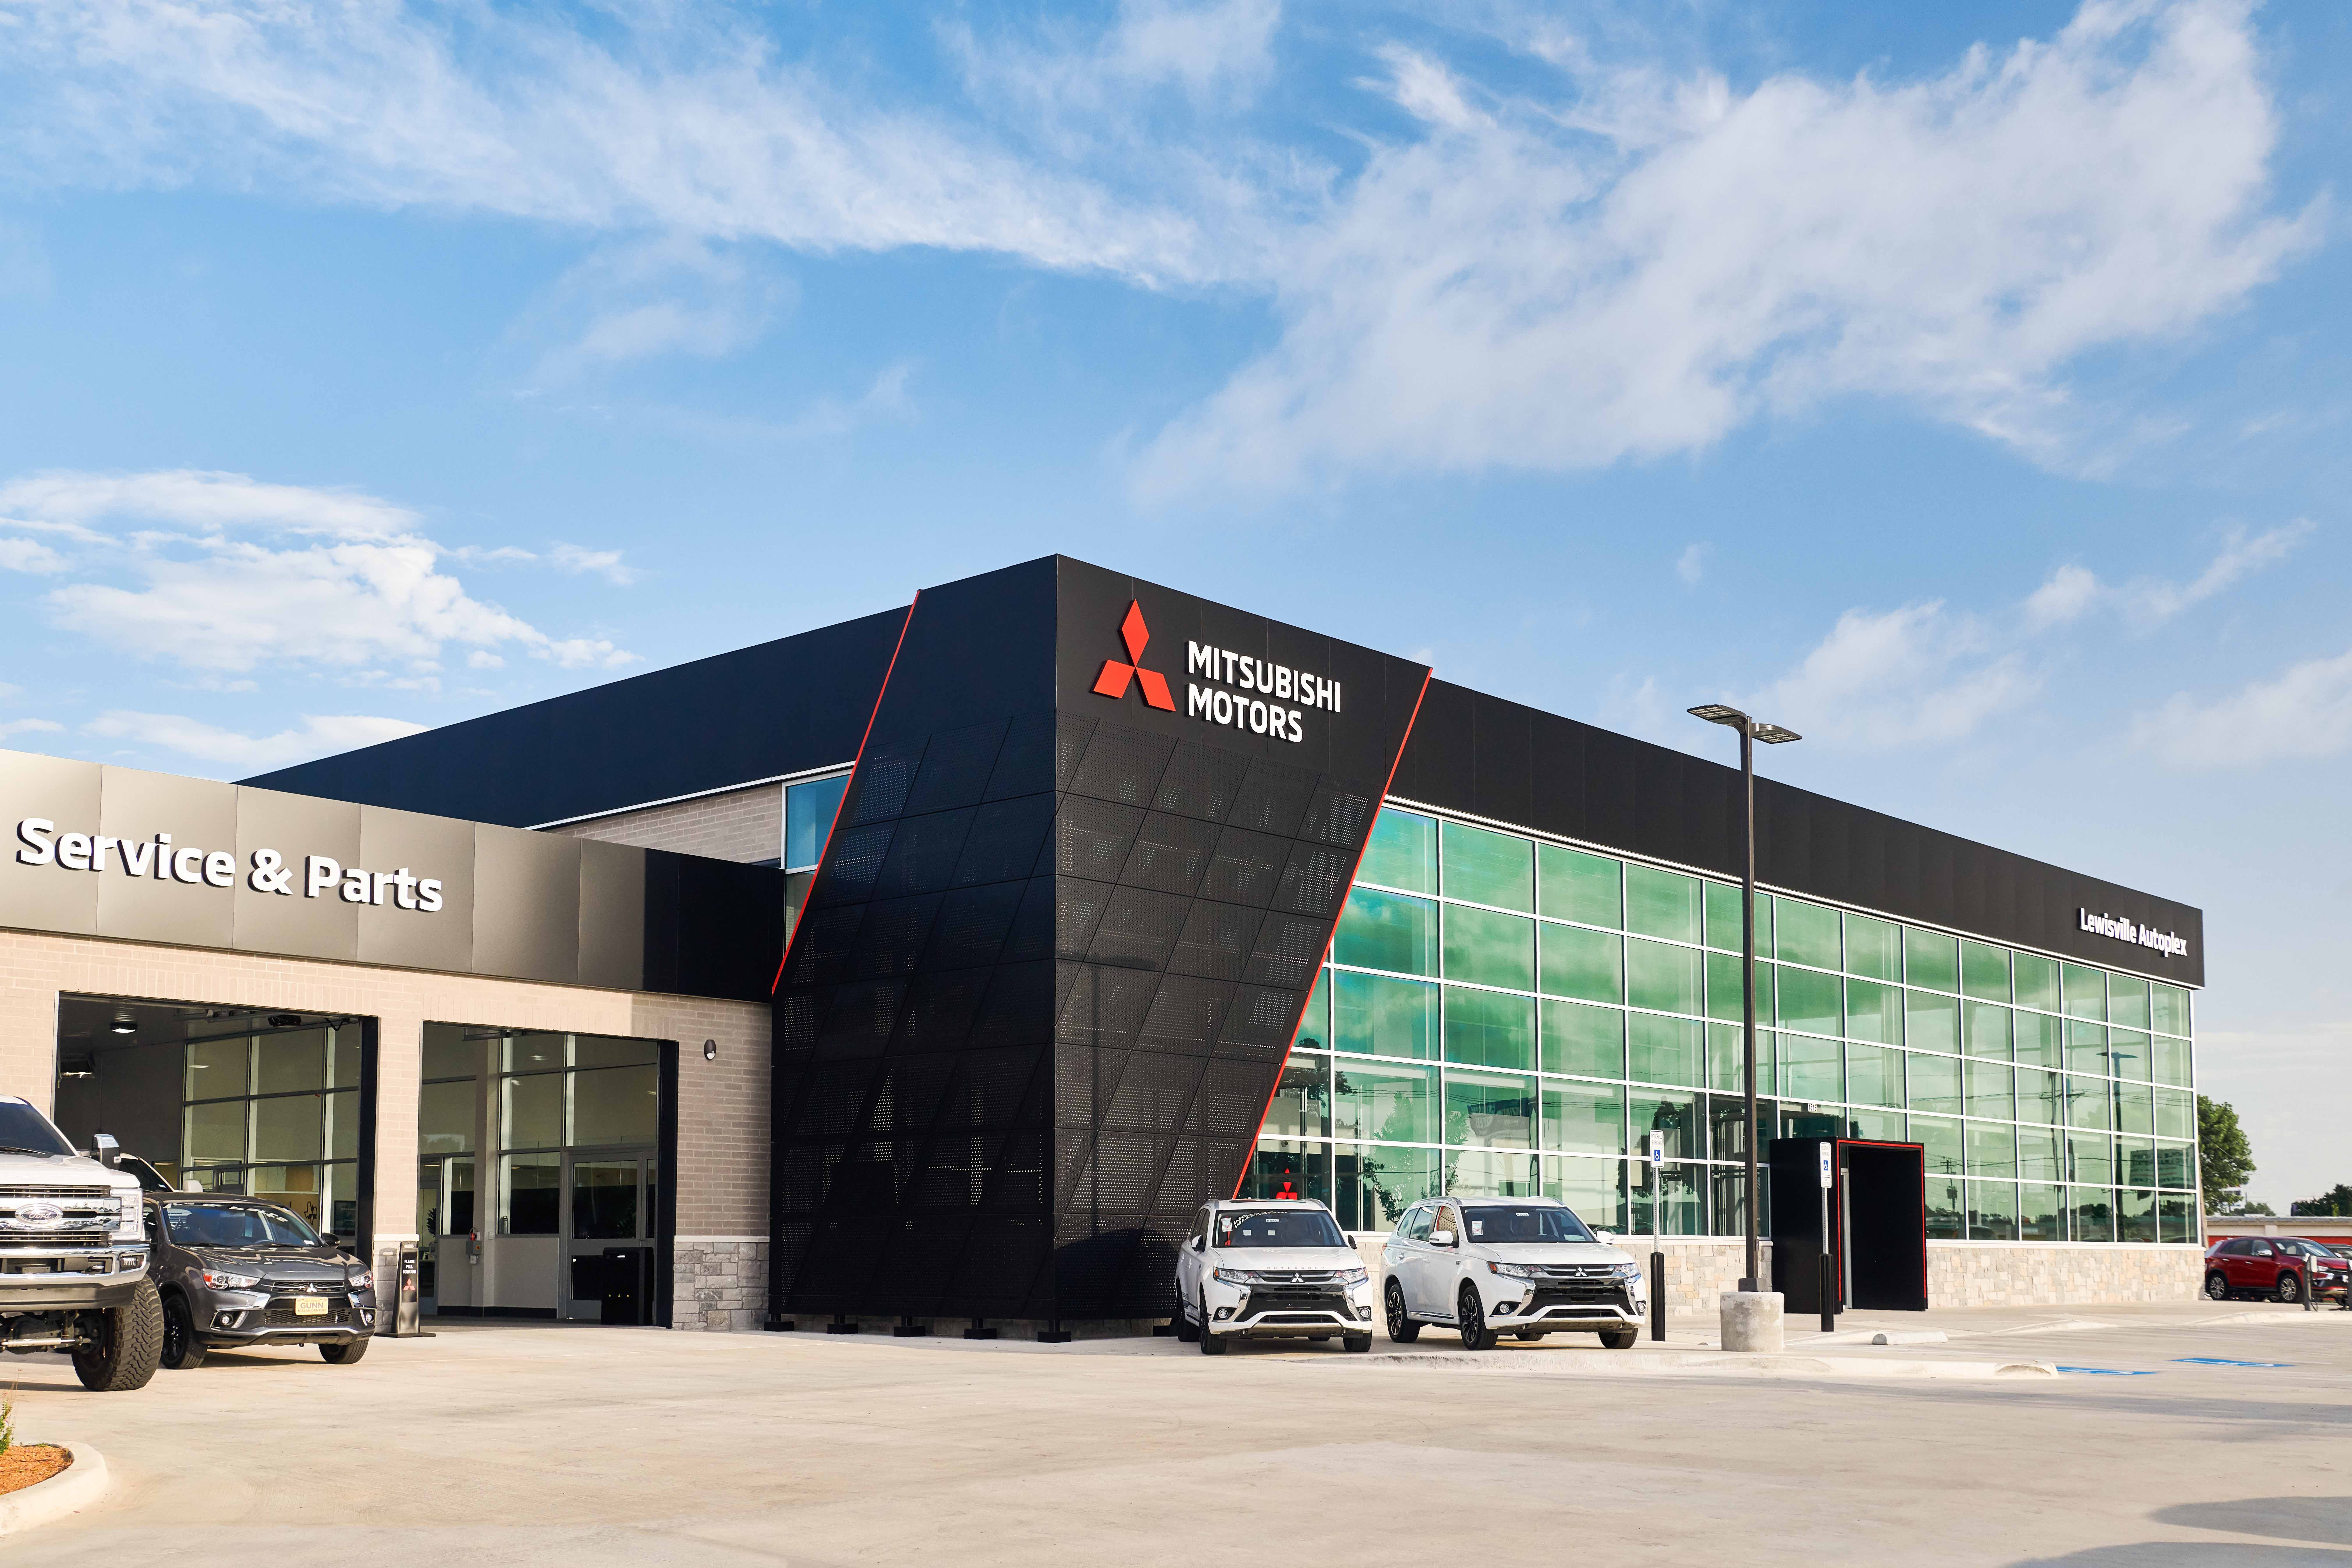 Mitsubishi is hosting a job fair next week to recruit employees for North American headquarters